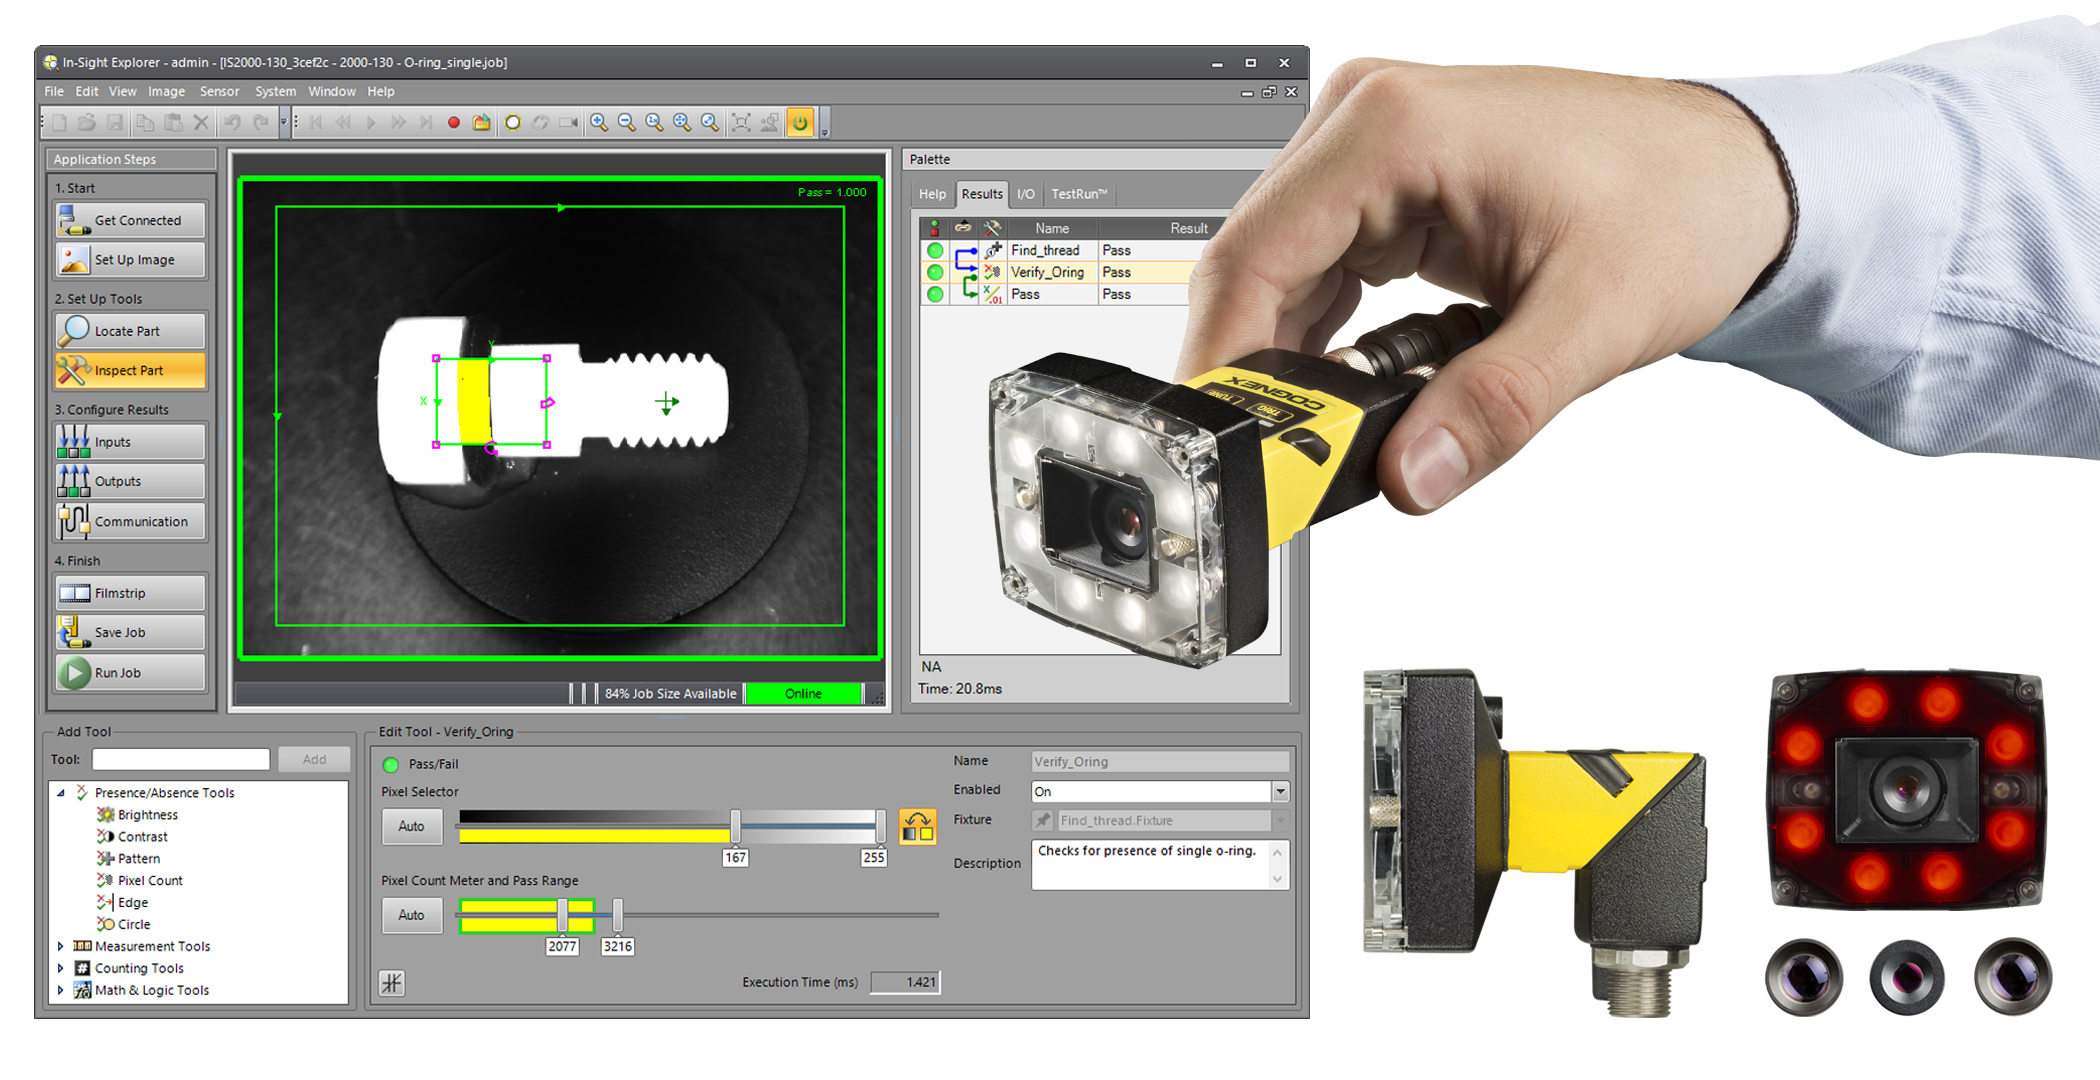 EasyBuilder software behind hand holding In-Sight-2000 and modular accessories